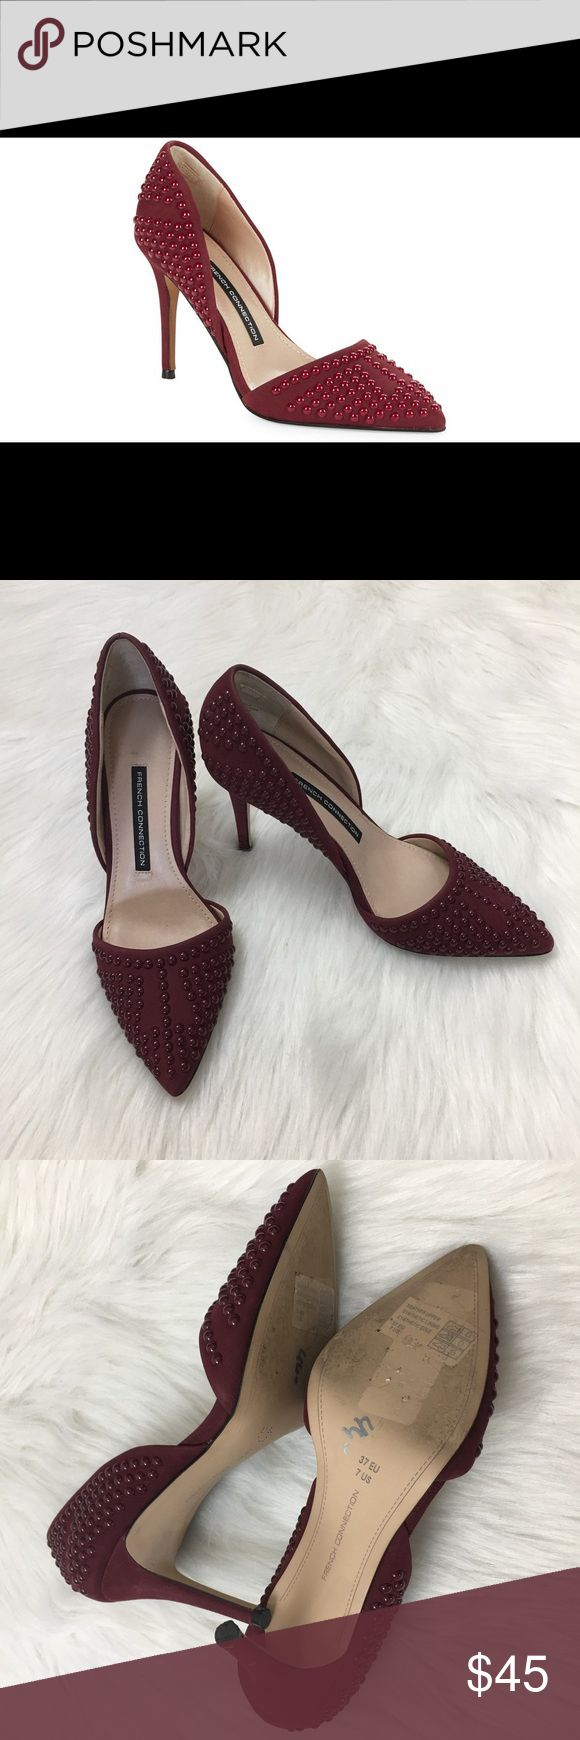 Selling this French Connection Ellis Pumps Red/Burgundy Size 7 on Poshmark! My username is: cottonswap25. #shopmycloset #poshmark #fashion #shopping #style #forsale #French Connection #Shoes